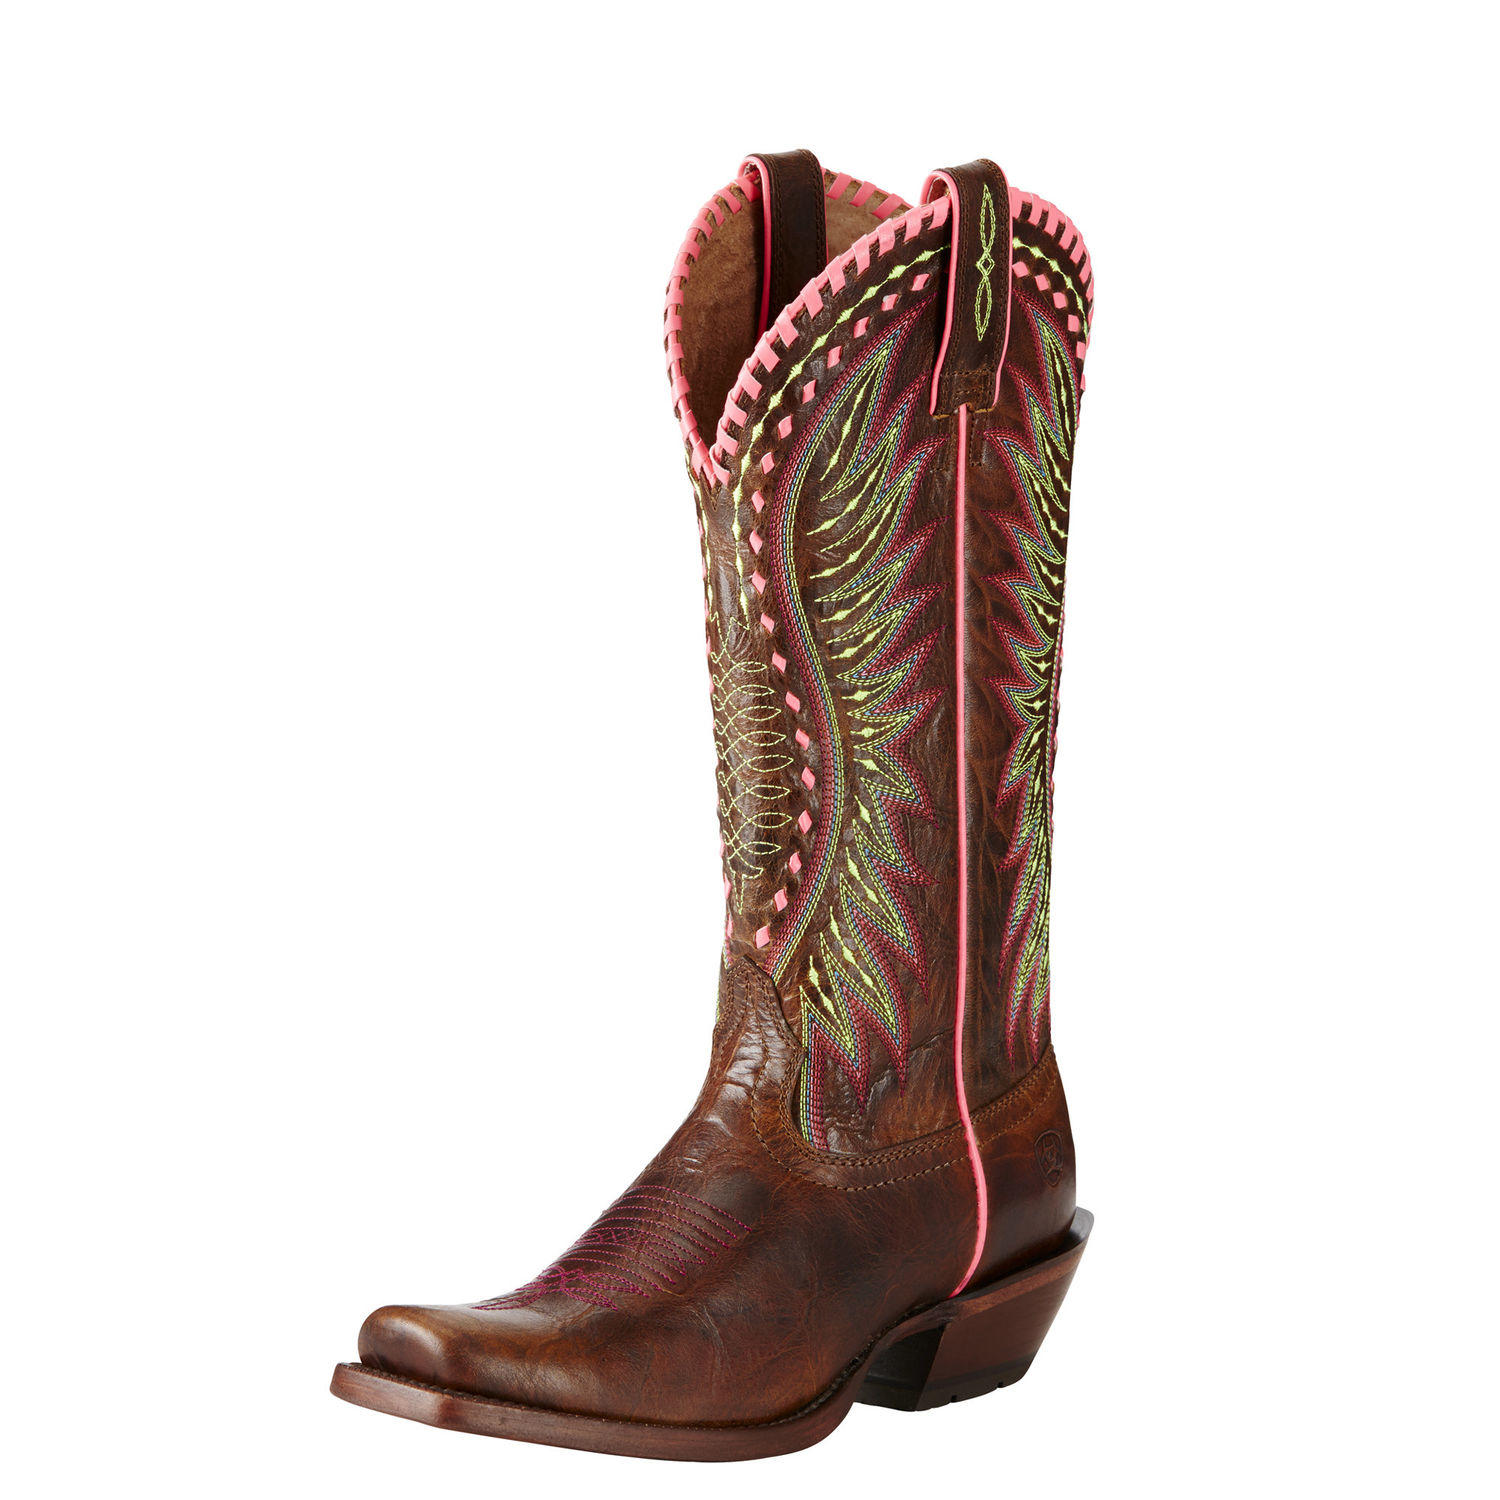 Ladies western riding fashion boot Derby STYLE # 10019936